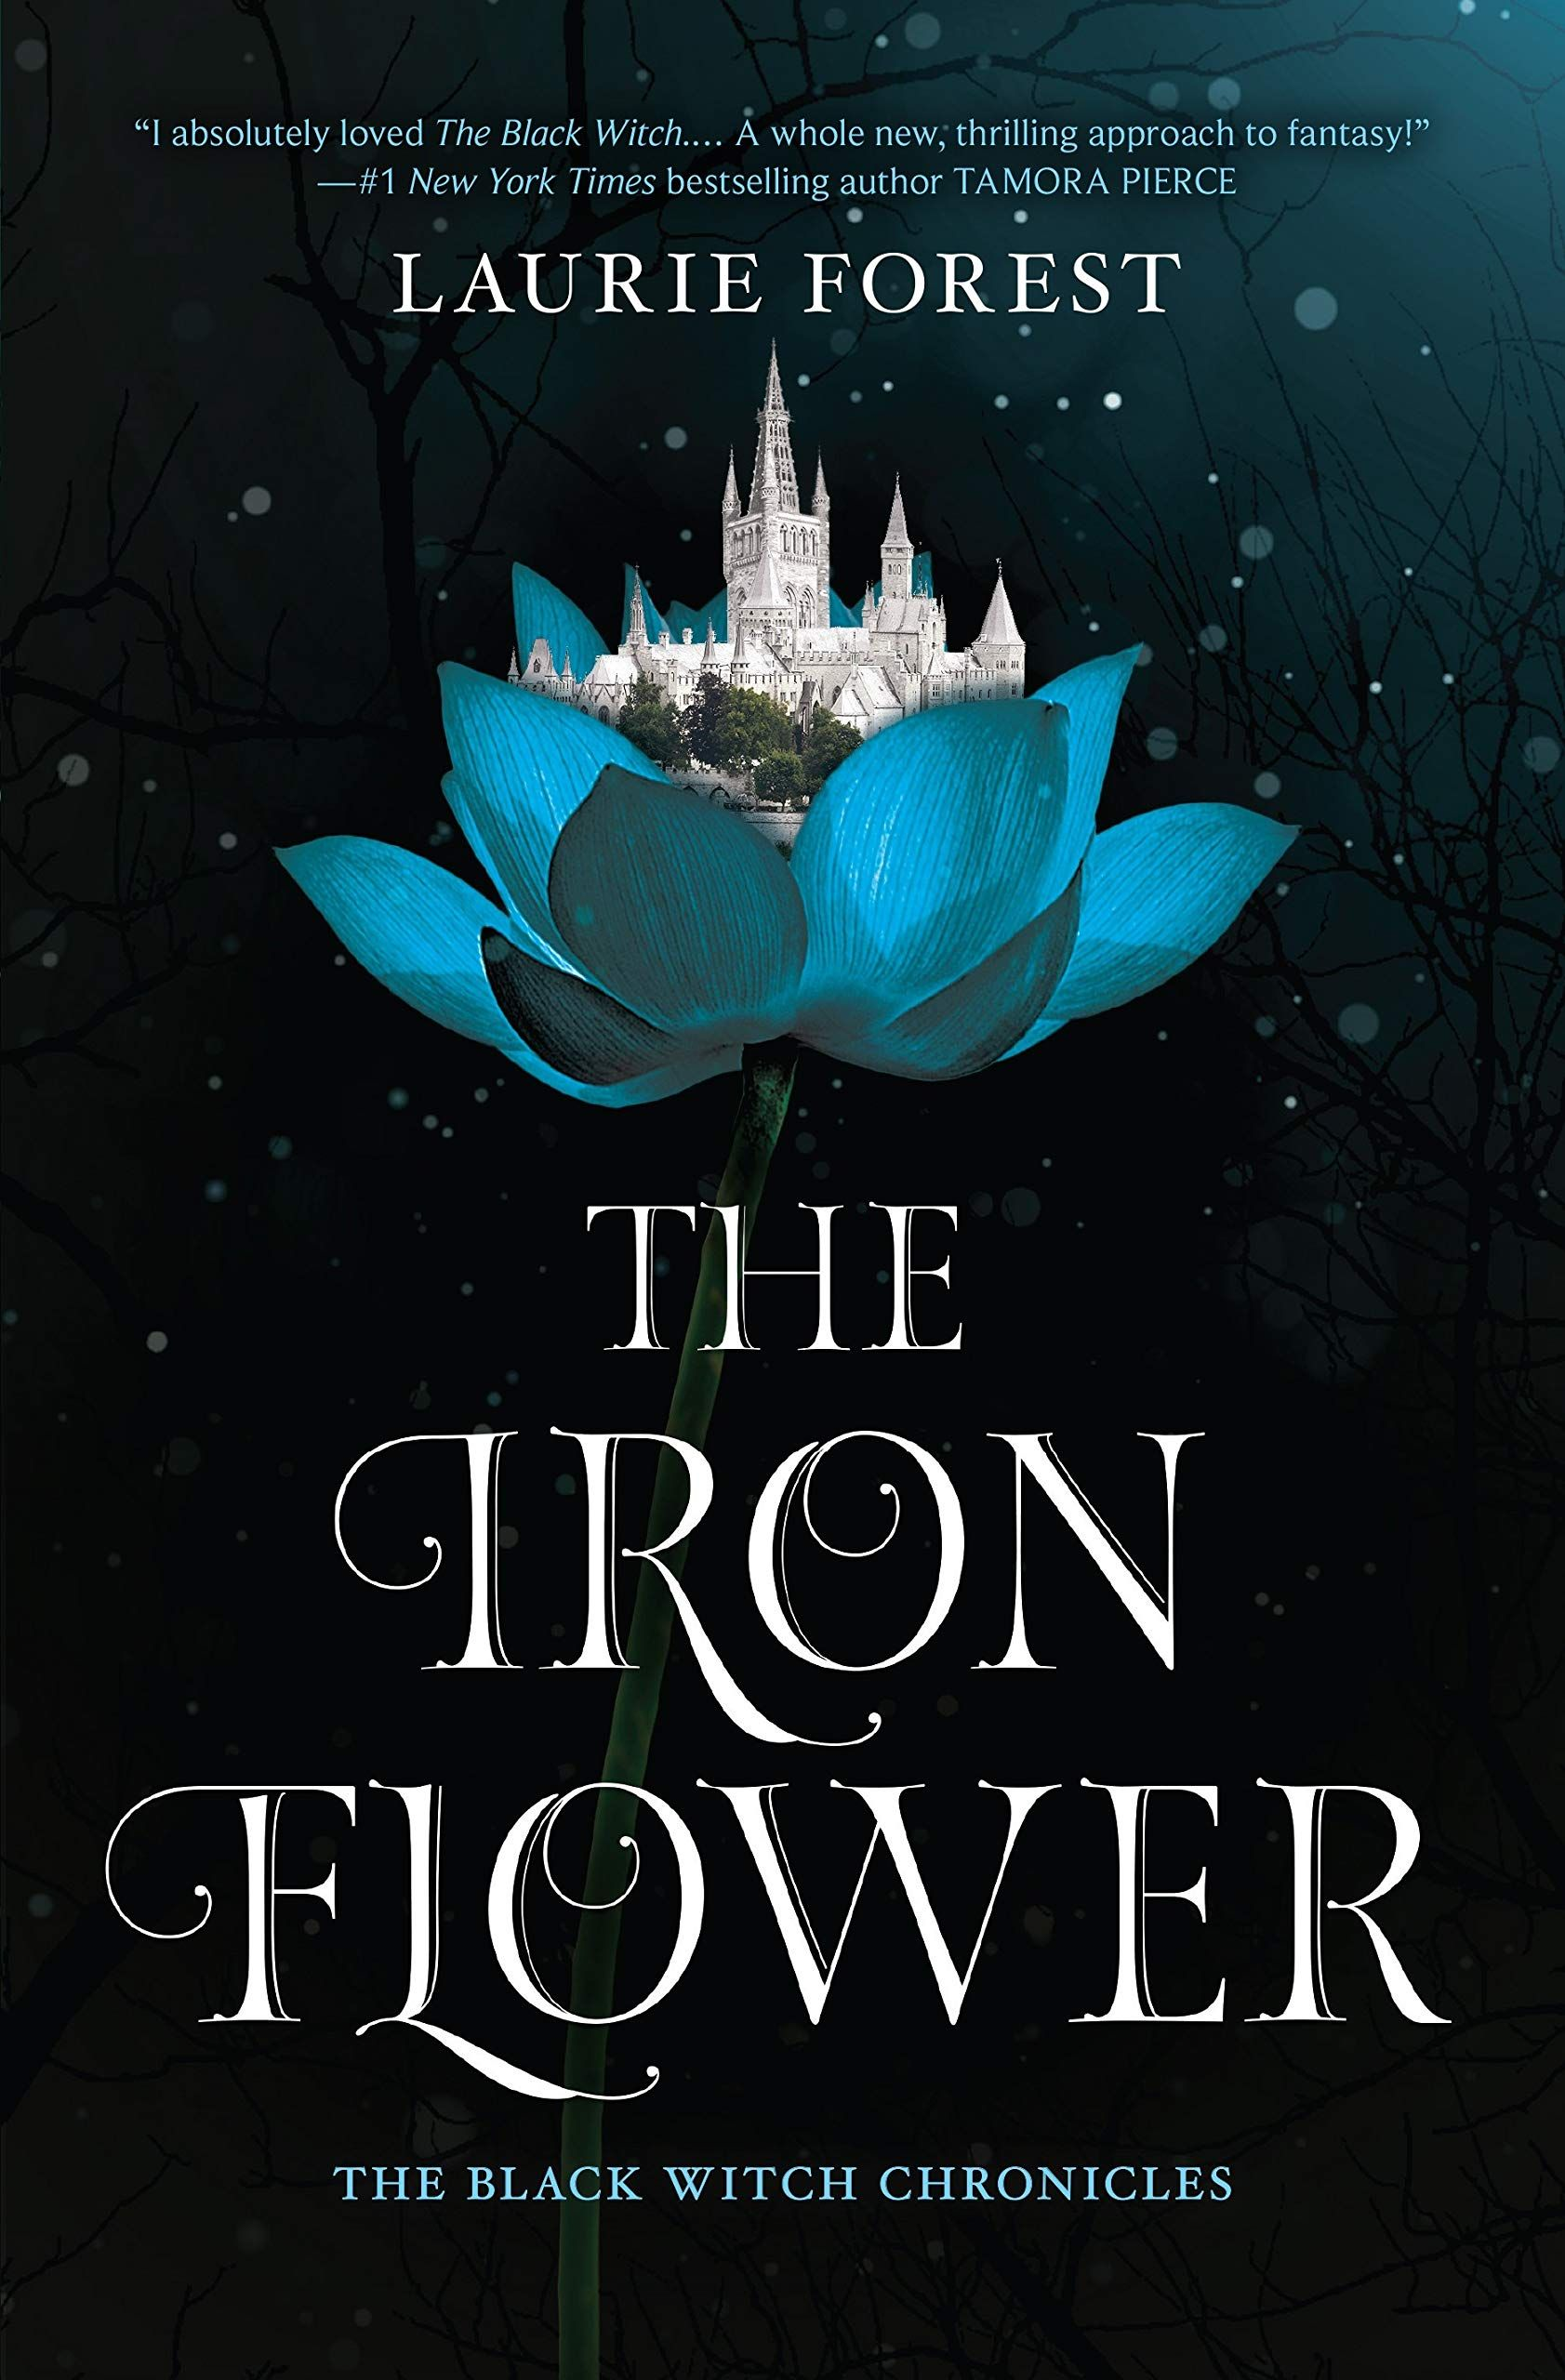 Pdf The Iron Flower The Black Witch Chronicles 2 By Laurie